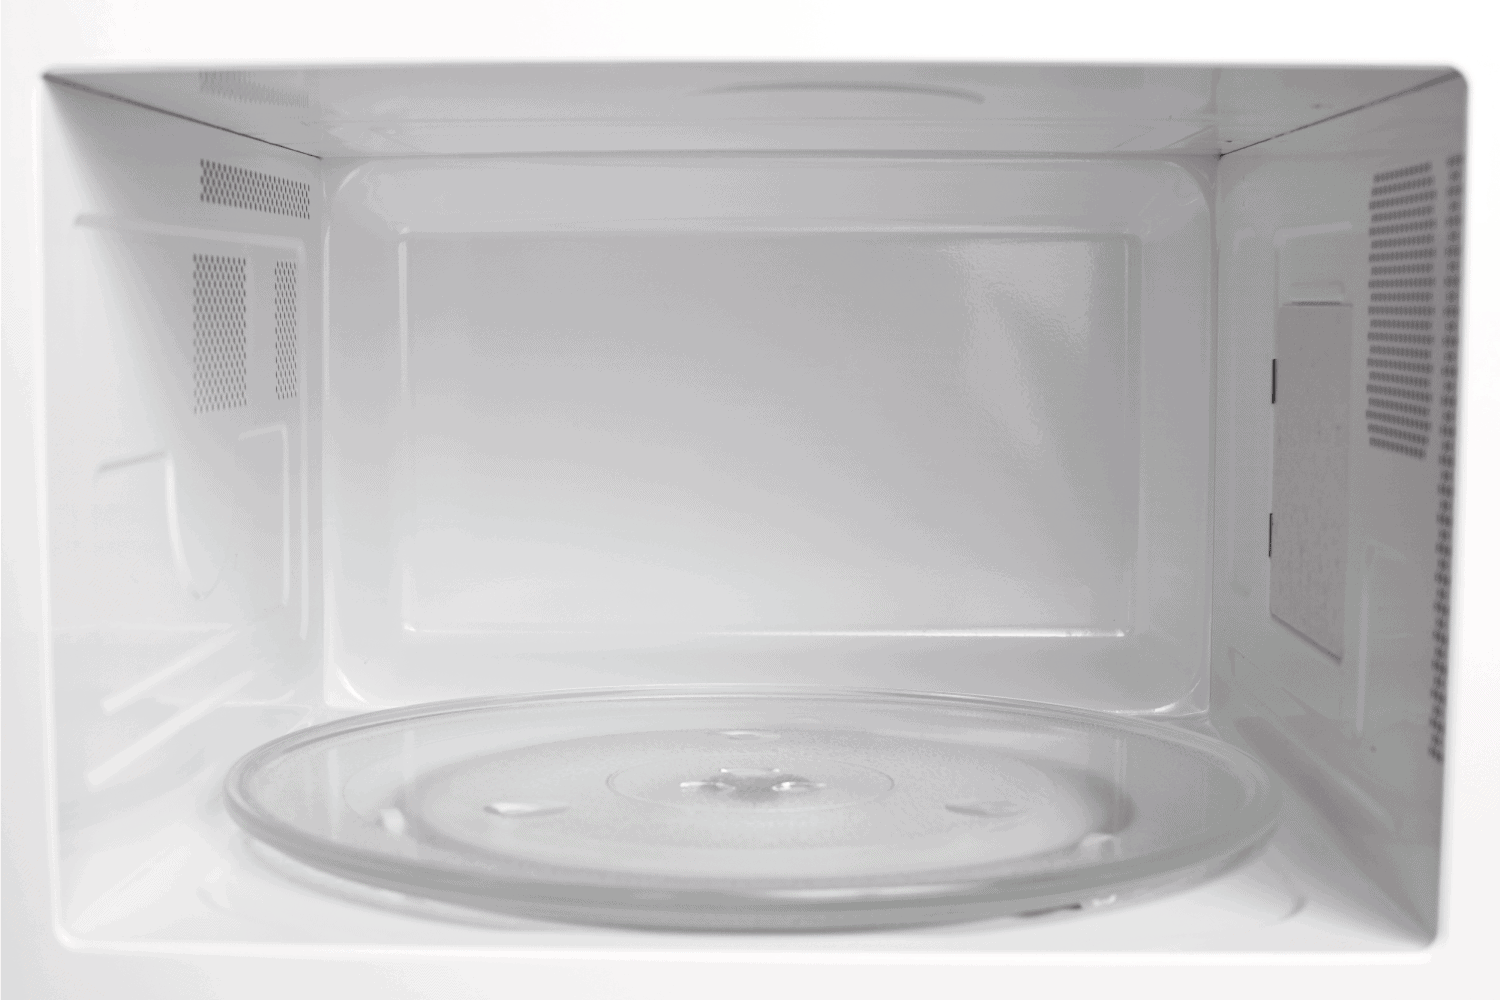 How To Clean Inside A Microwave [A Complete Guide]